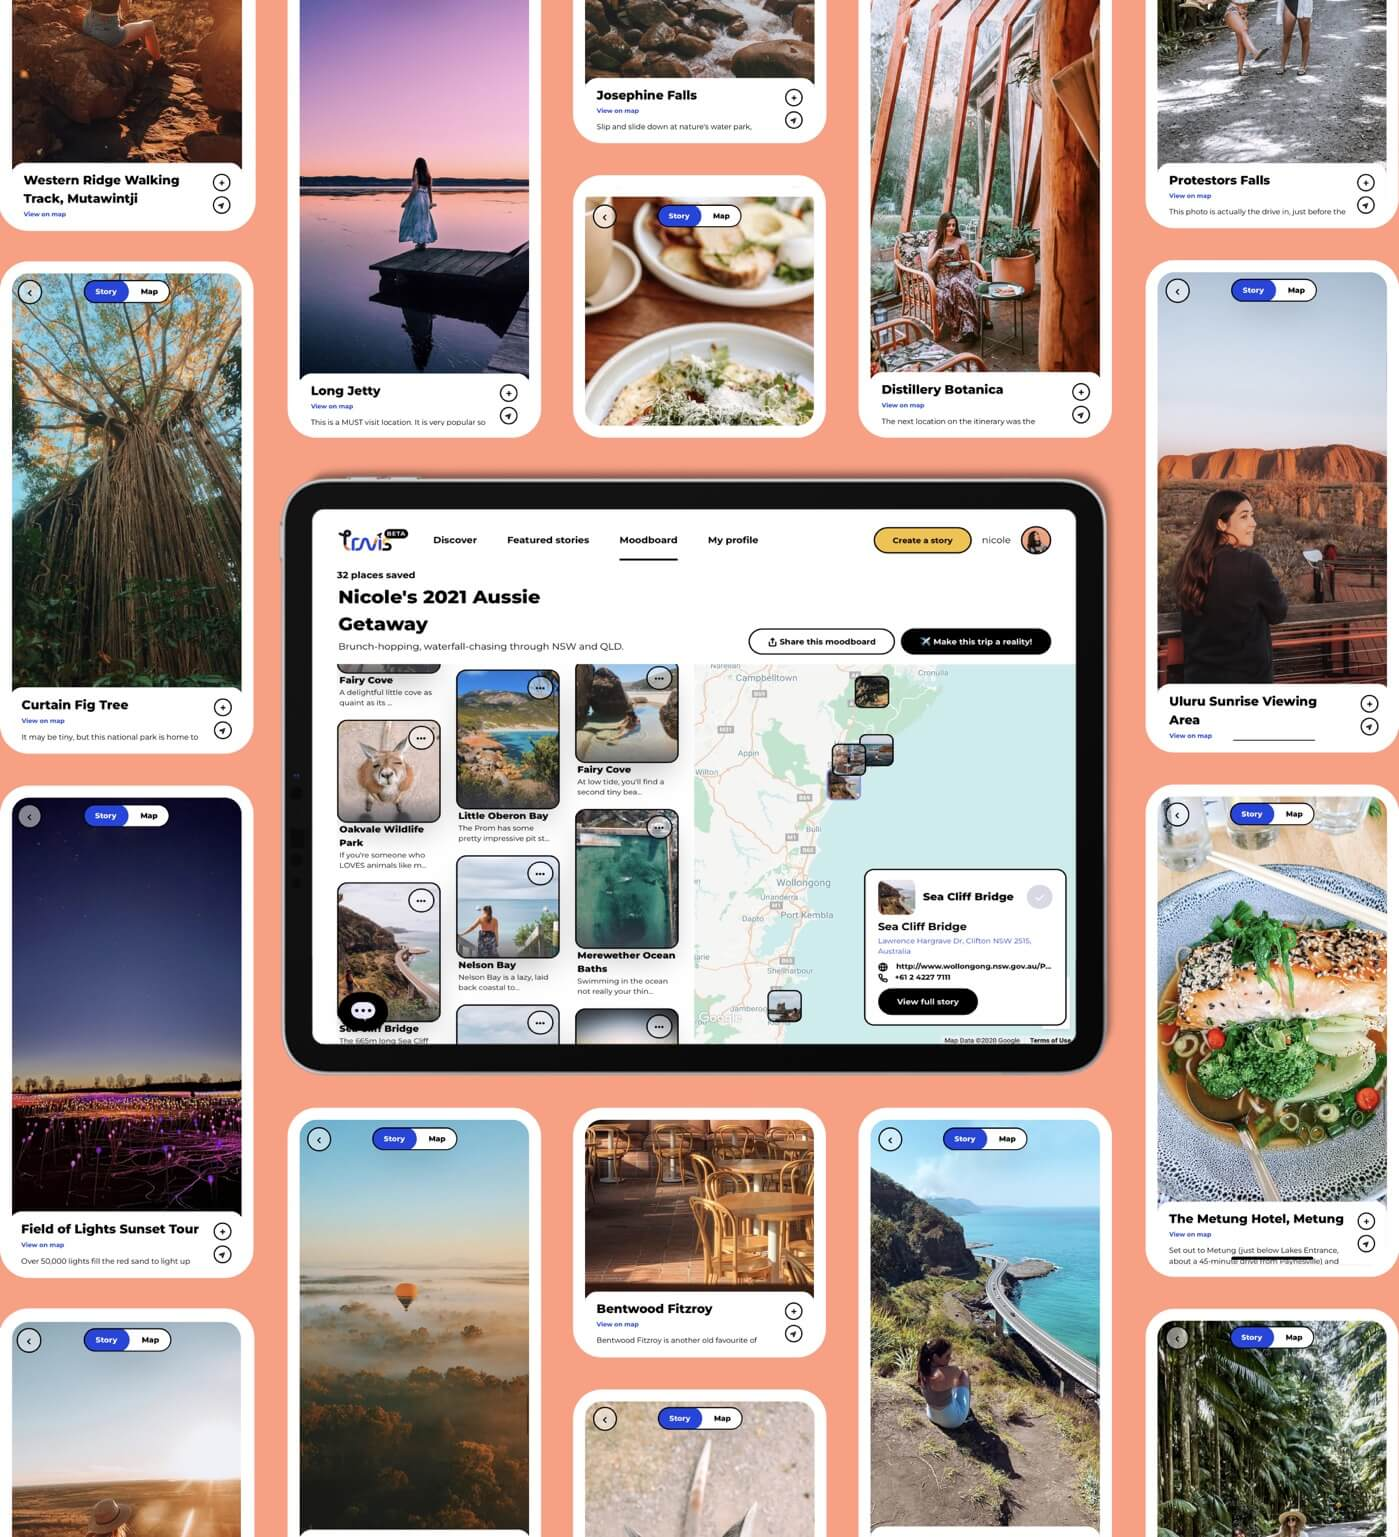 Travis travel moodboard to curate your aussie getaway trips without spreadsheet